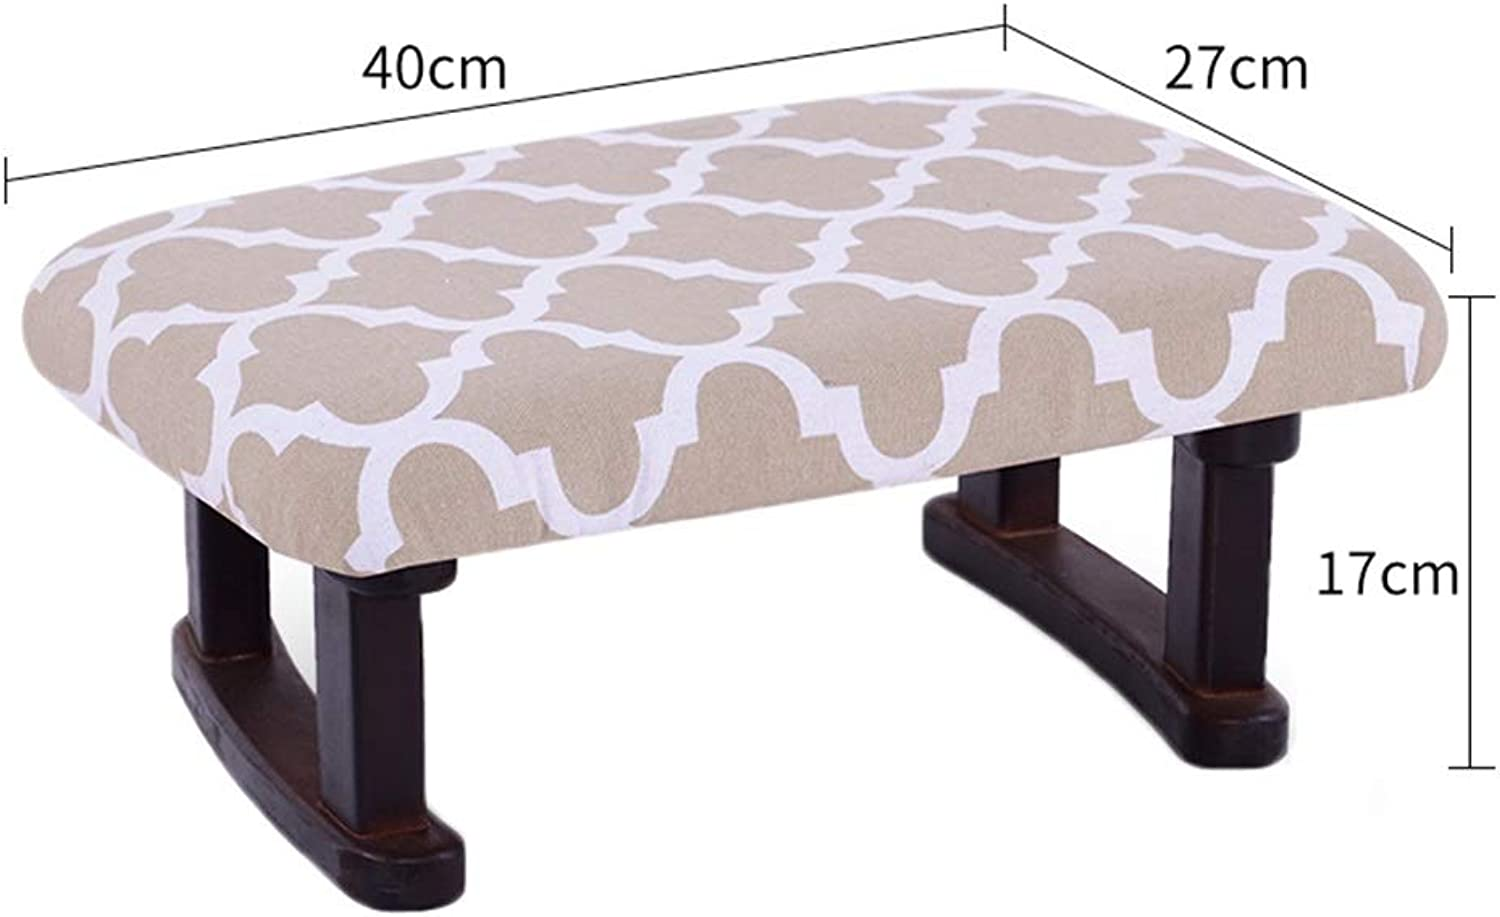 AGLZWY Sofa Stool Multipurpose Solid Wood Cloth Breathable Portable Modern Simple Living Room Dining Stool Small Bench, Multicolor, 40X27X17cm (color   A, Size   40X27X17cm)